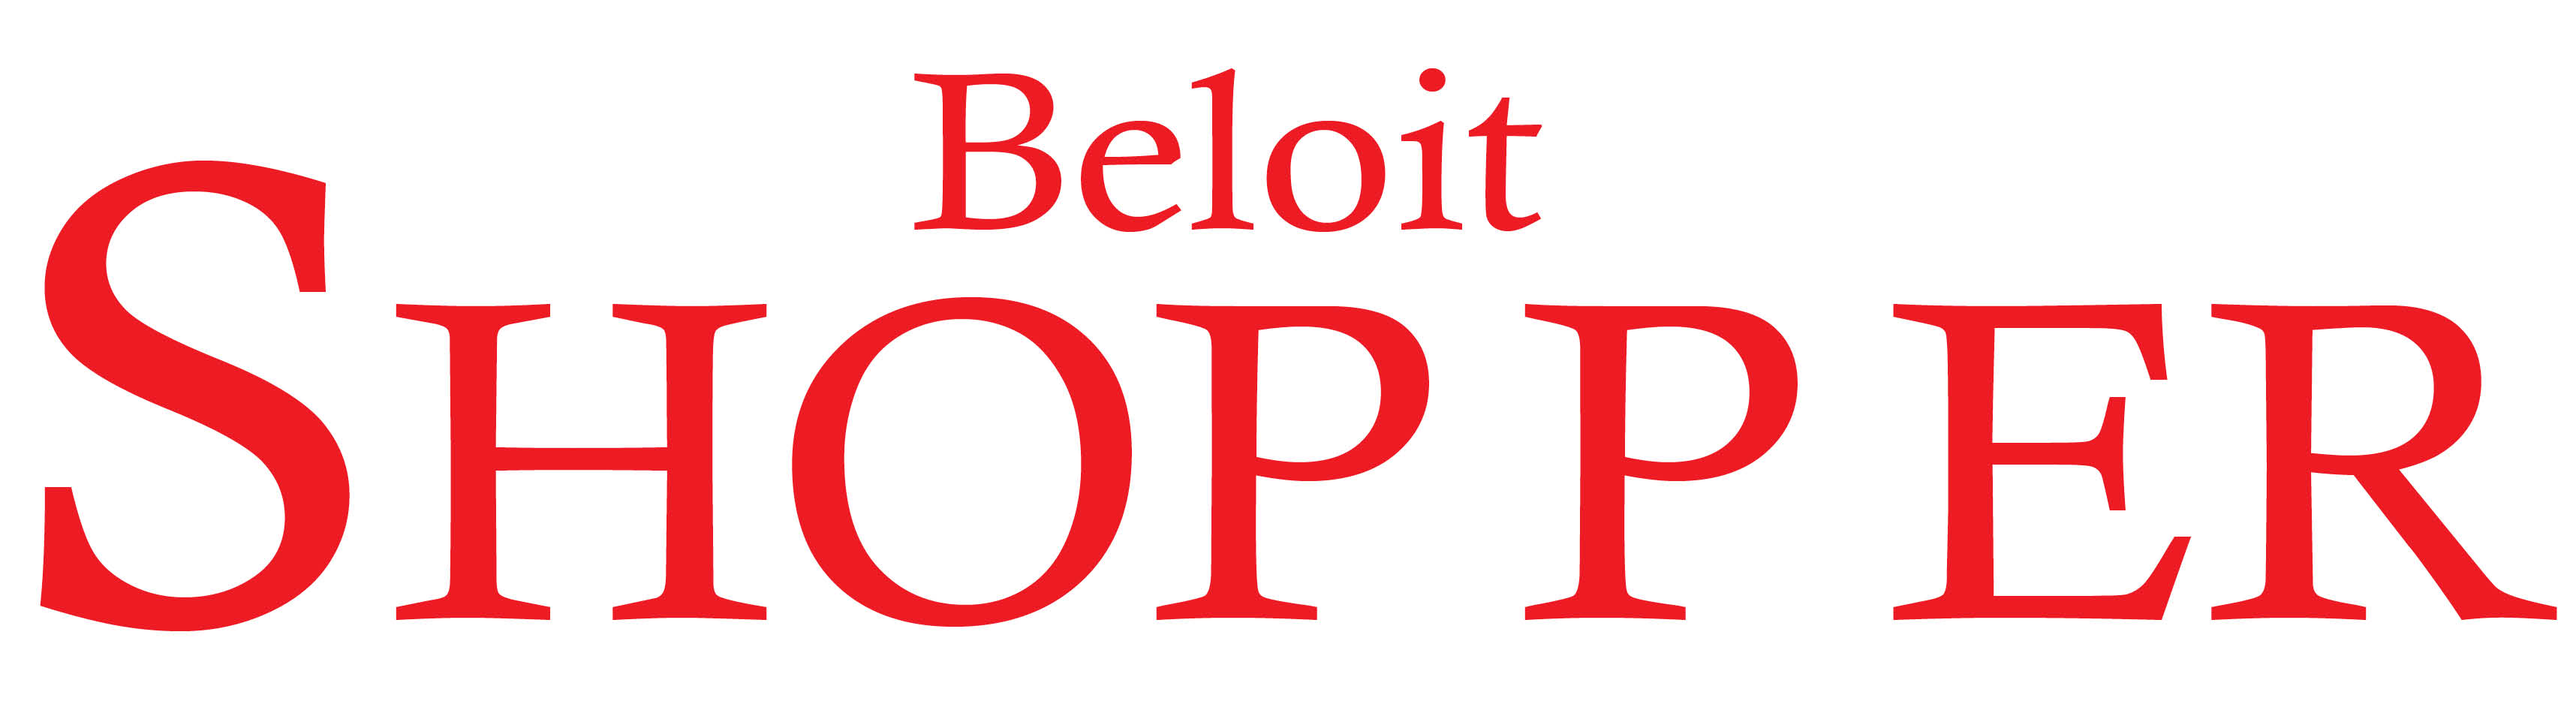 12/14/17 Beloit Shopper